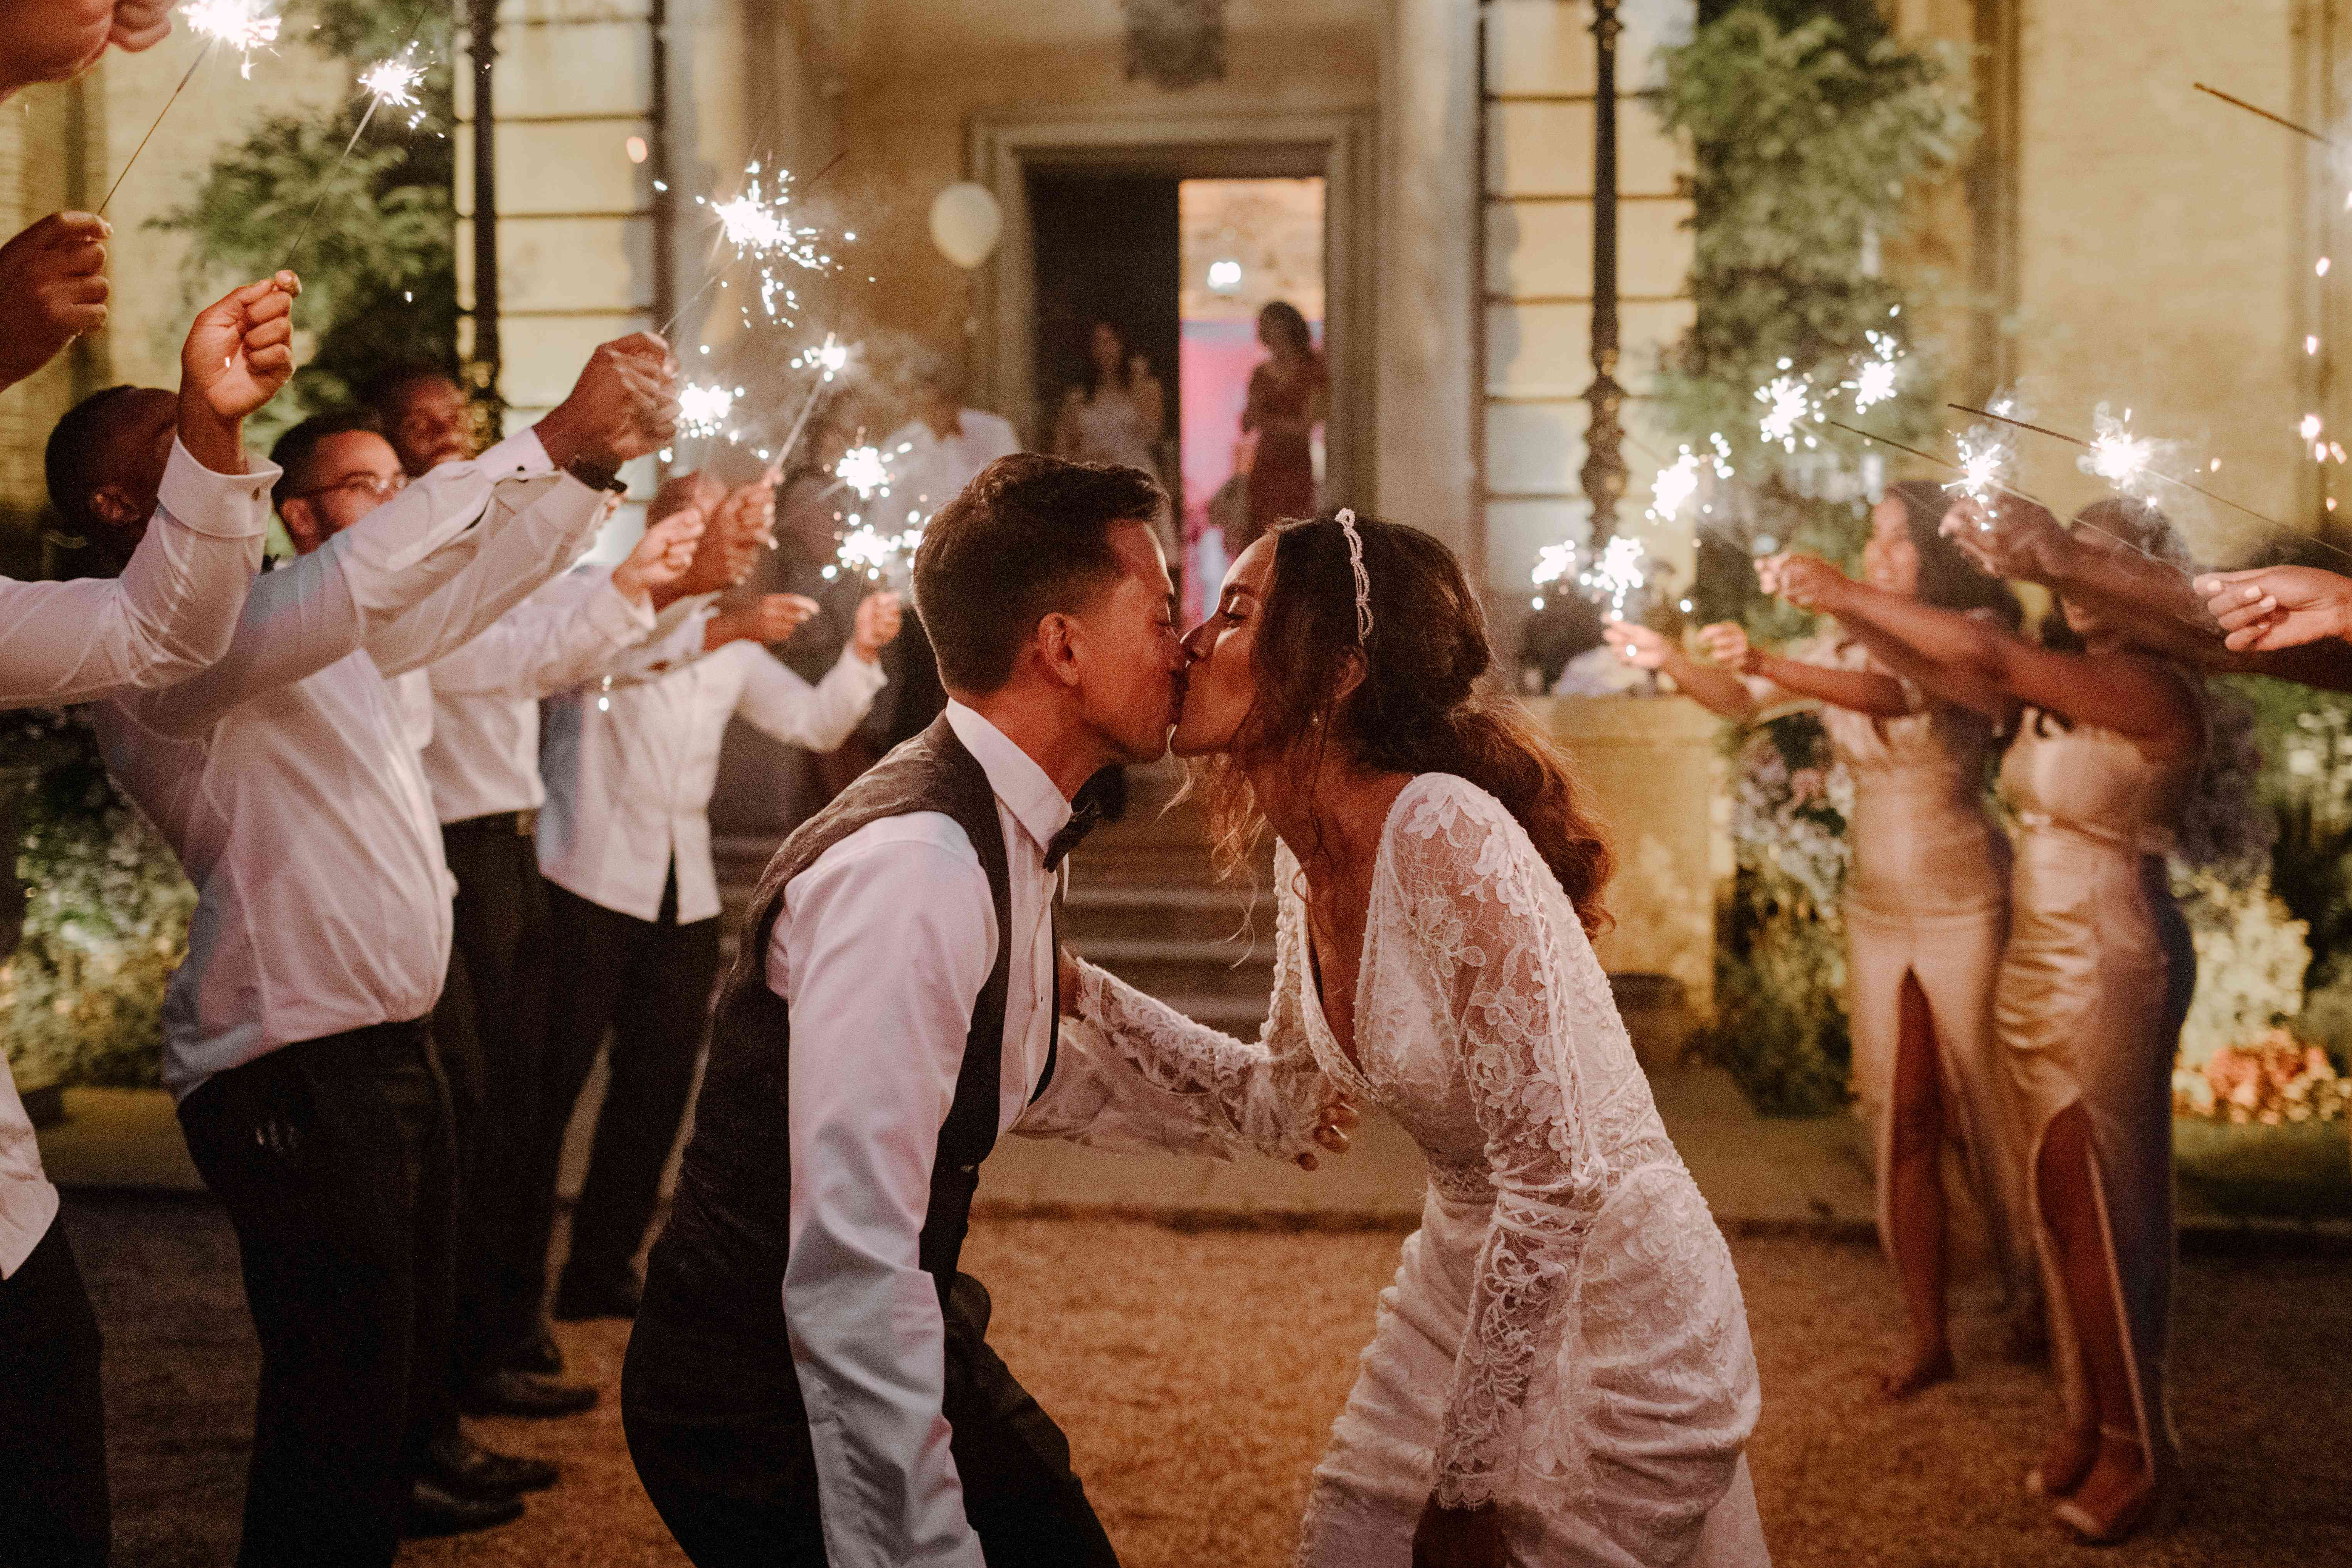 The bride and groom kiss surrounded by sparklers